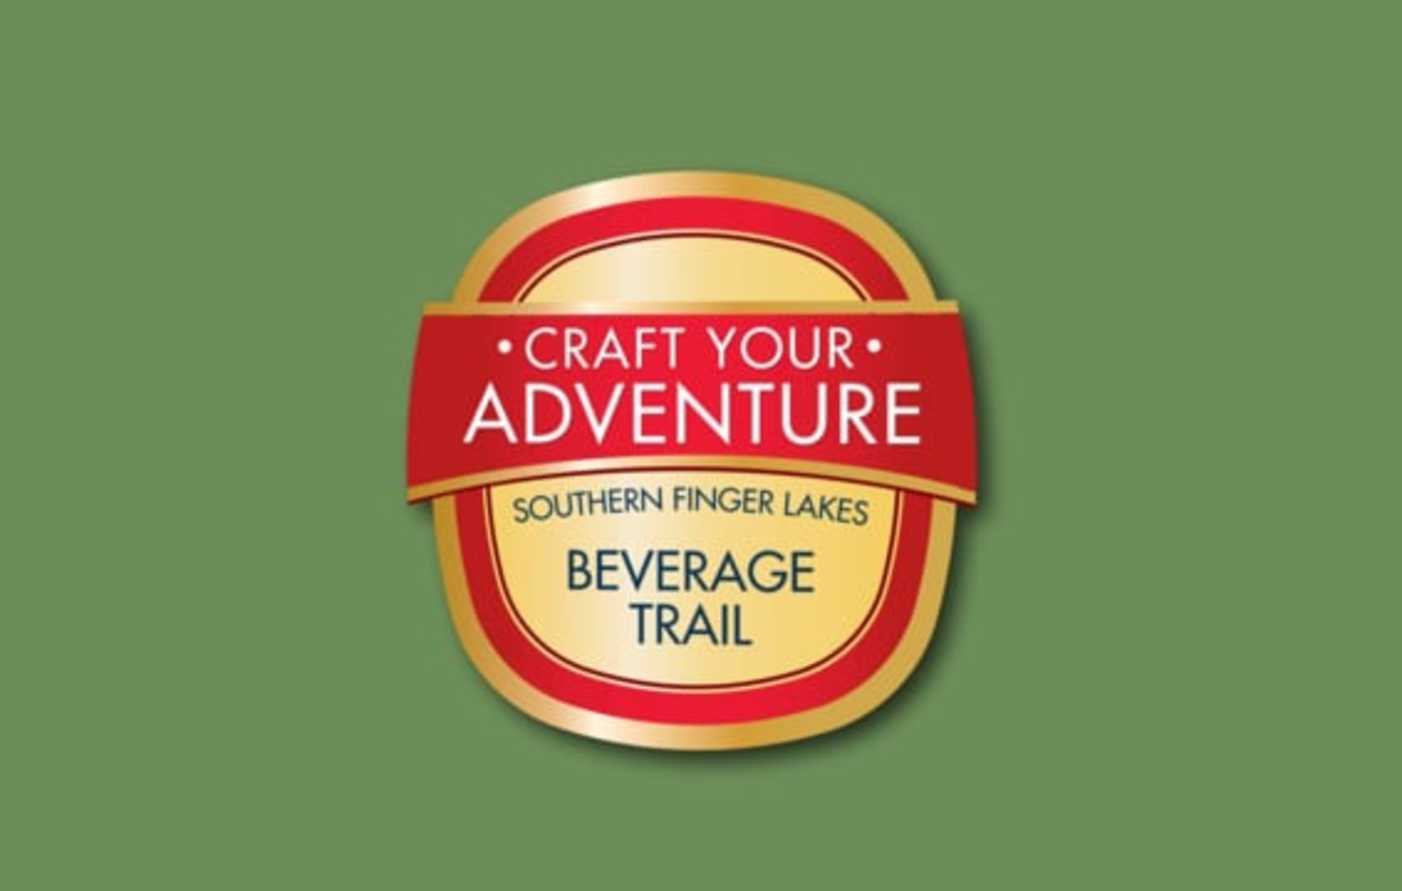 Craft Your Adventure